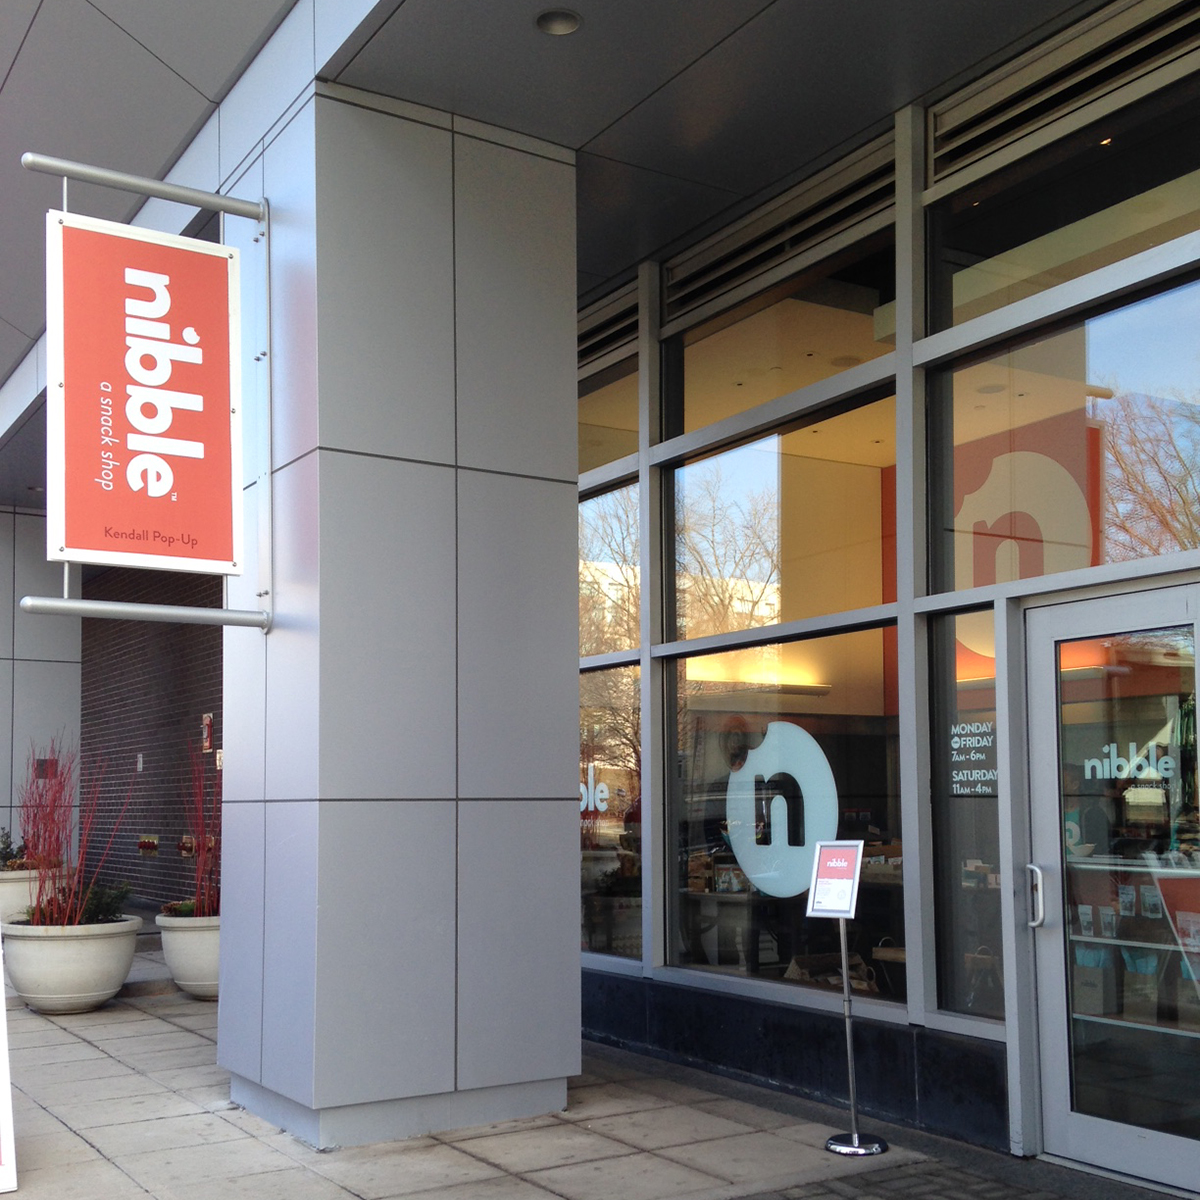 Nibble, a new pop-up snack shop in Kendall Square